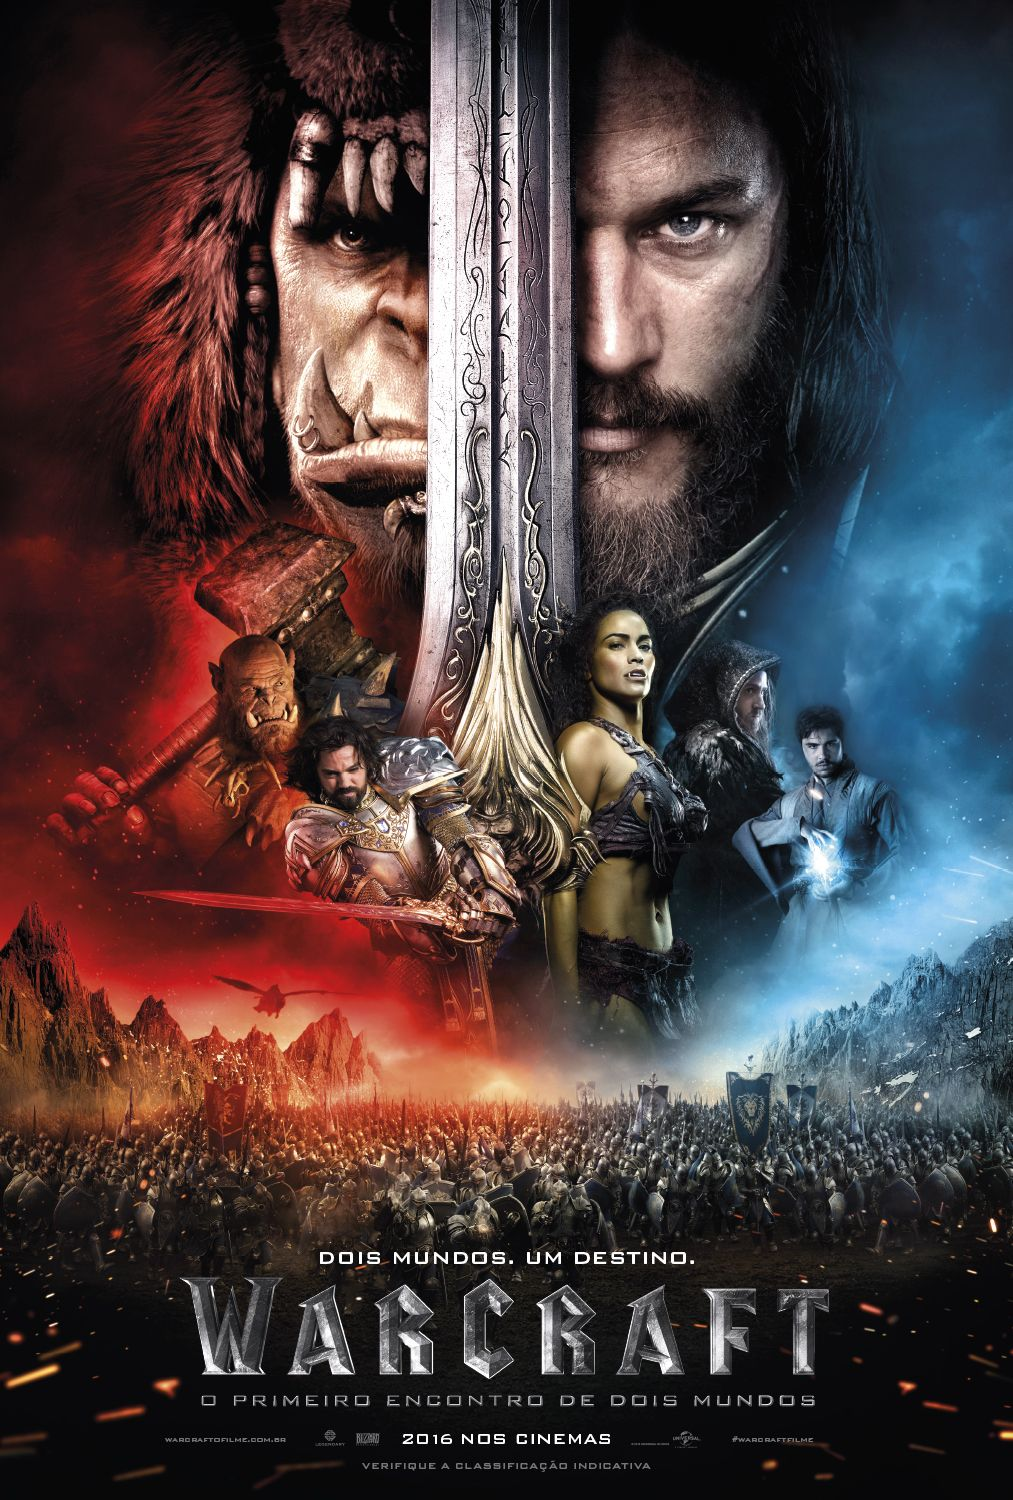 Cartaz Oficial Do Filme Warcraftfilme Warcraft Cartaz Filme